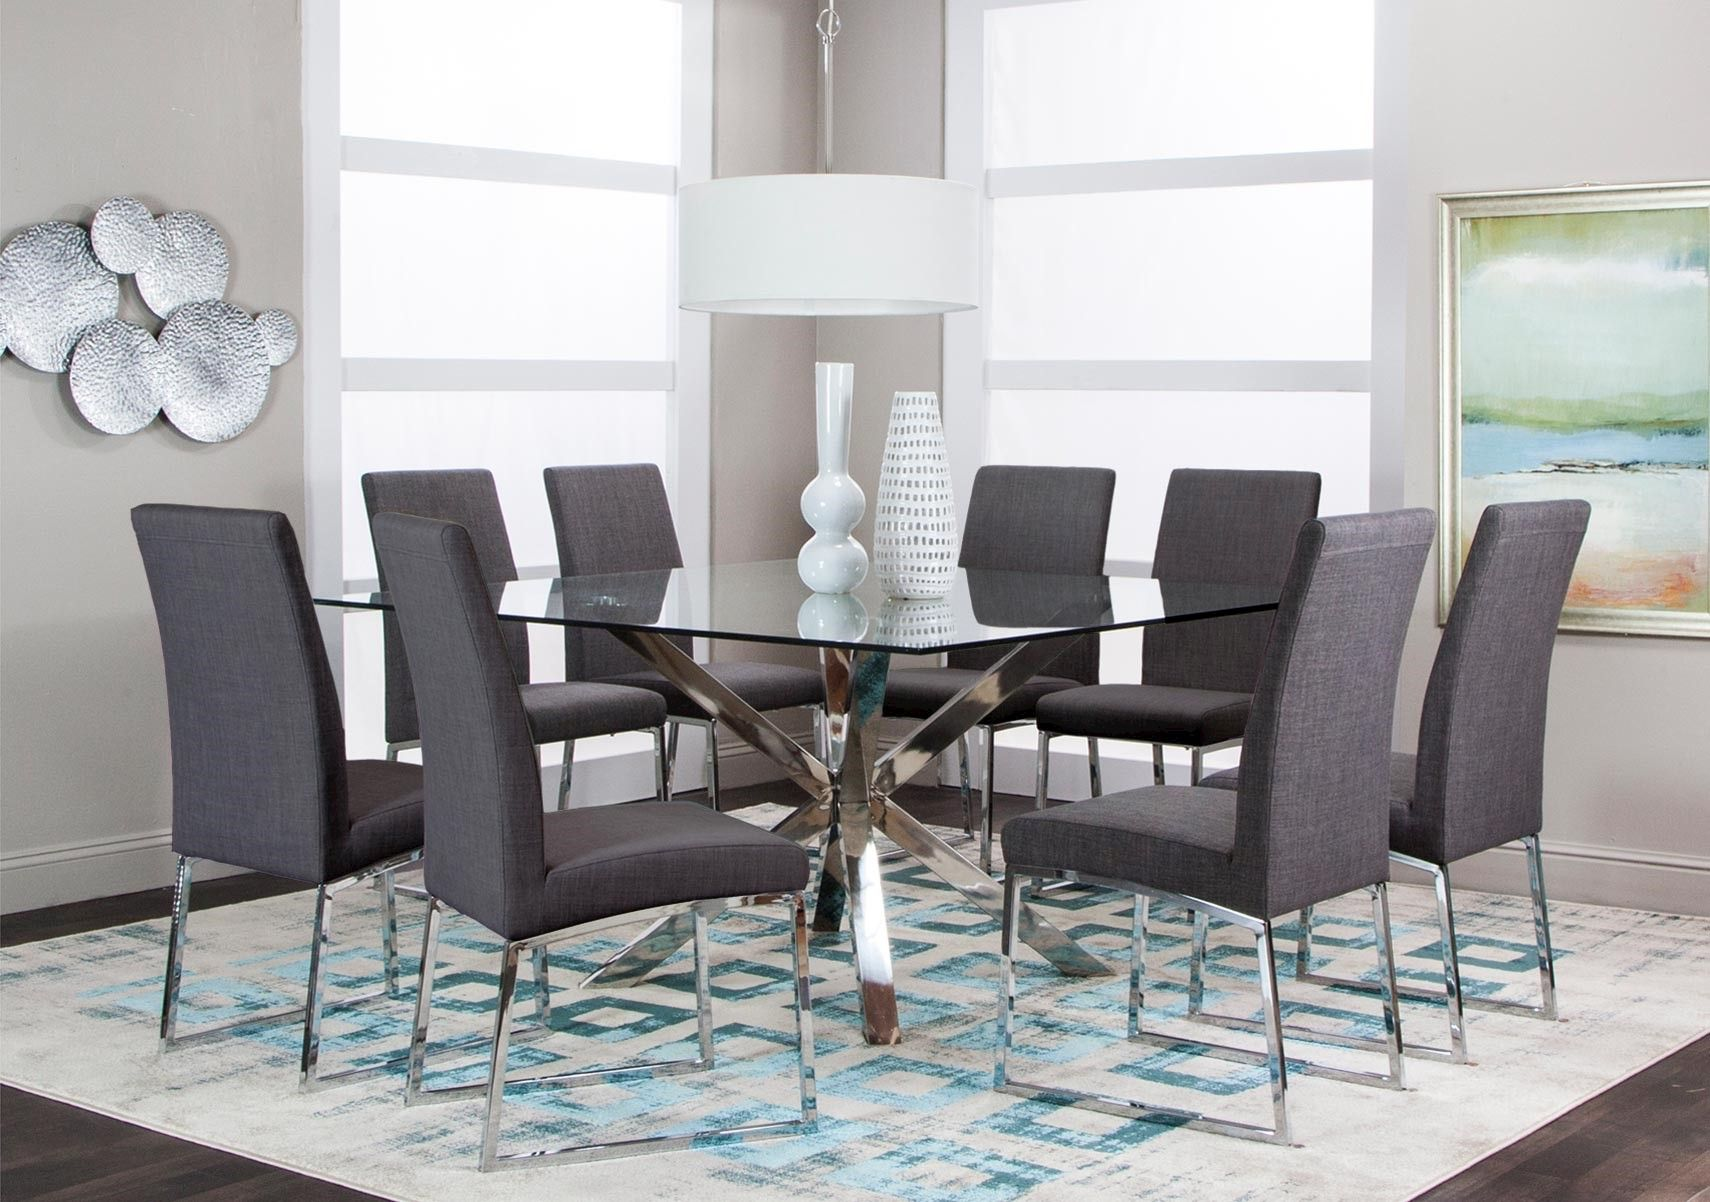 Brilliant Lacks Classic Dark Gray 9 Pc Dining Set Clean Lines Home Interior And Landscaping Mentranervesignezvosmurscom